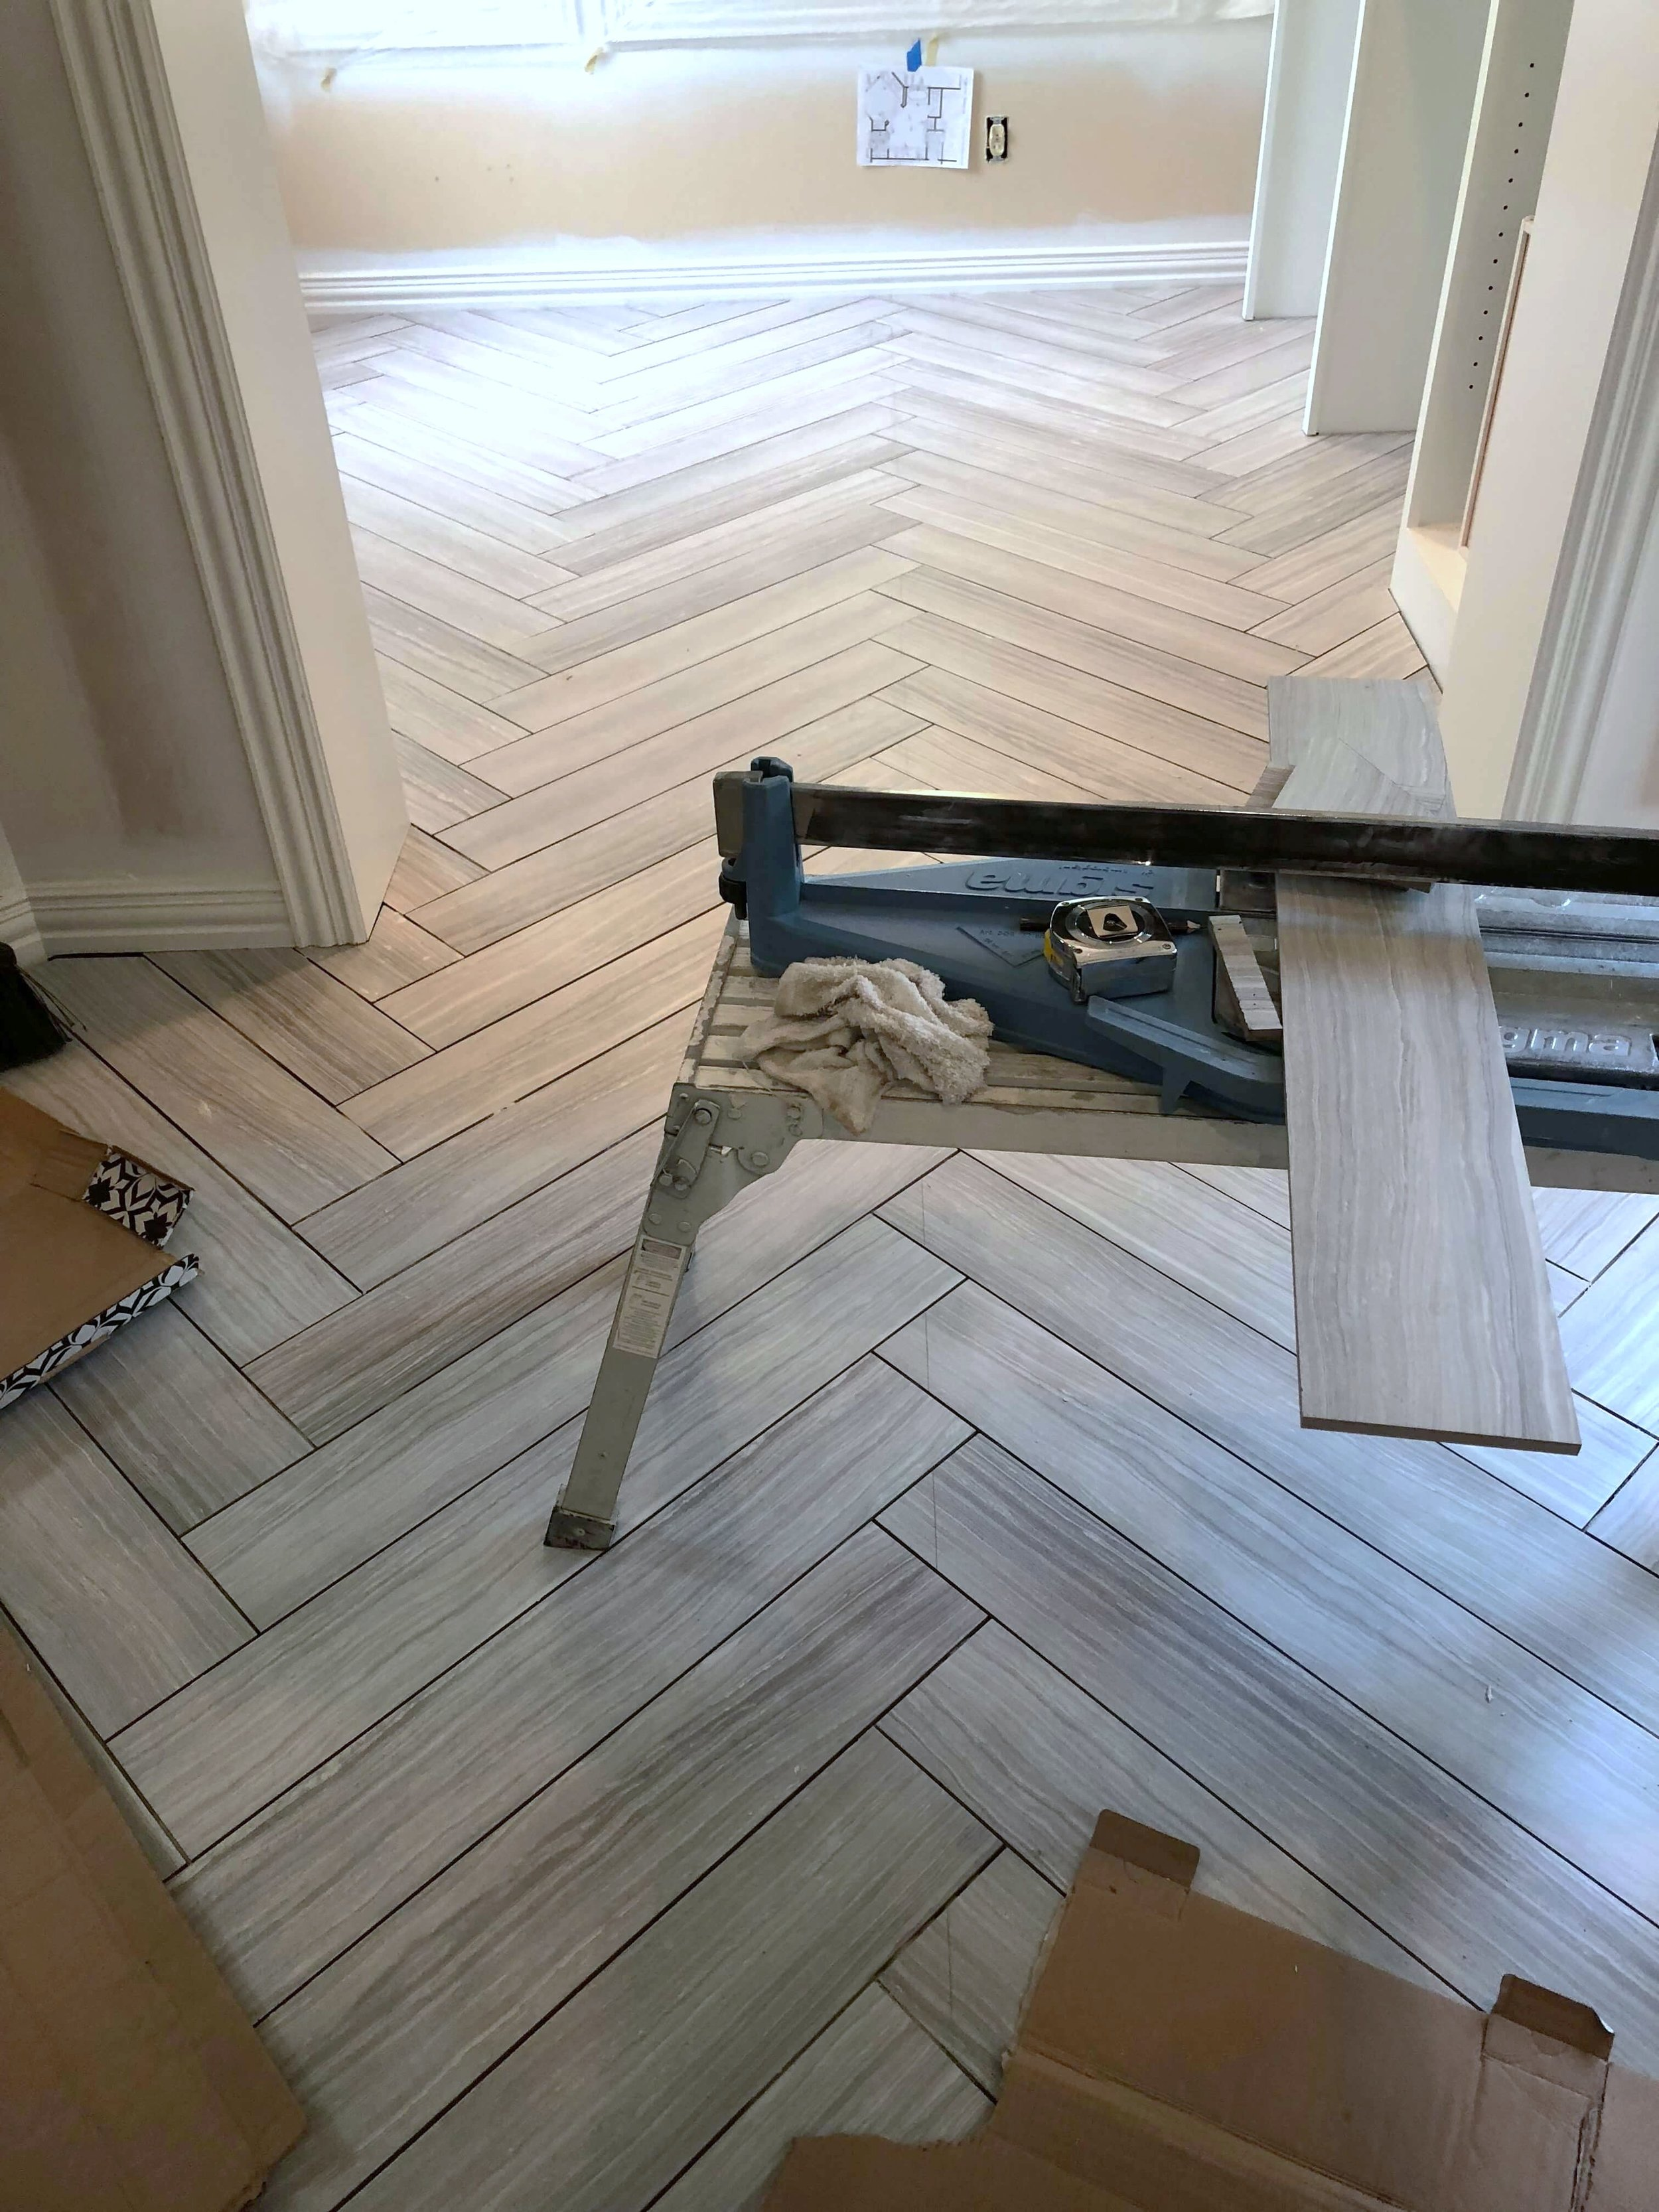 What to Upgrade In Your New Builder Home And What NOT To | Upgrade flooring products to get the best hard surfaces you can for most longevity in your new home